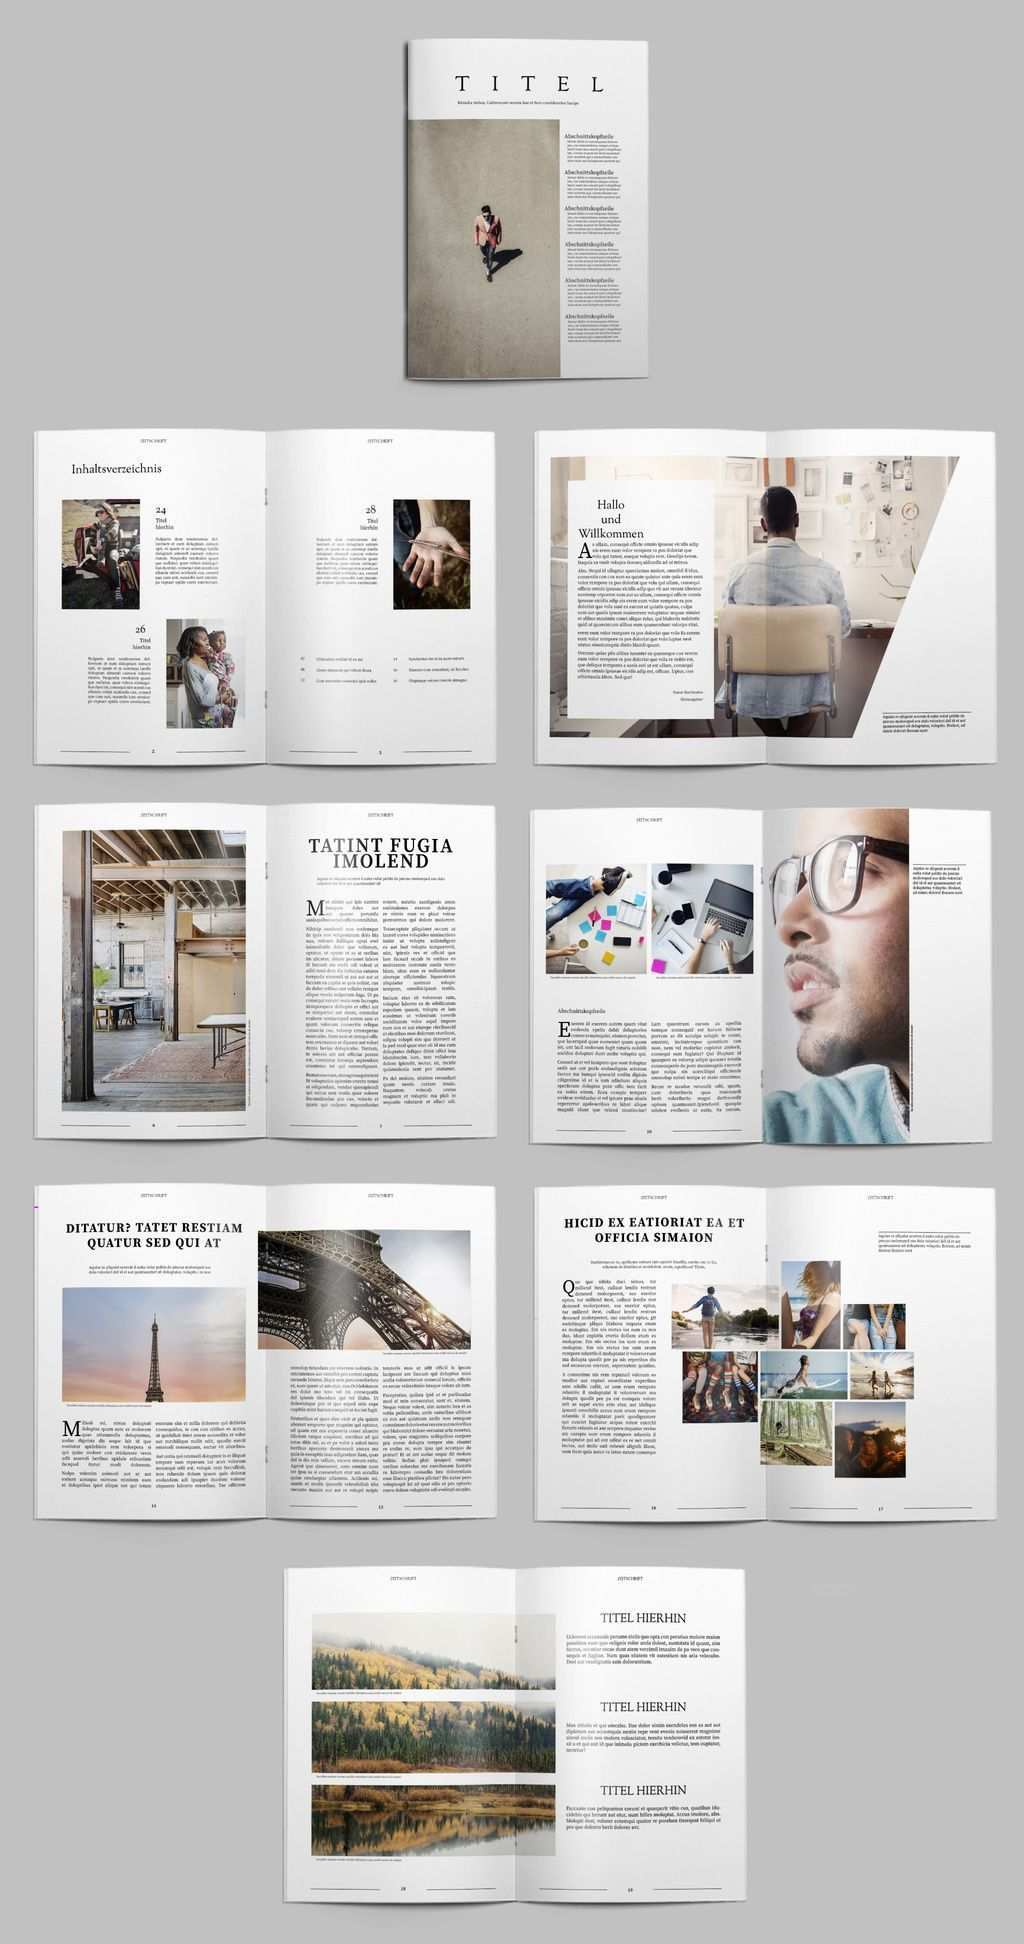 Free Indesign Templates For Magazines Free Indesign Templates For M Free Indesign Magazine Templates Magazine Layout Inspiration Indesign Magazine Templates